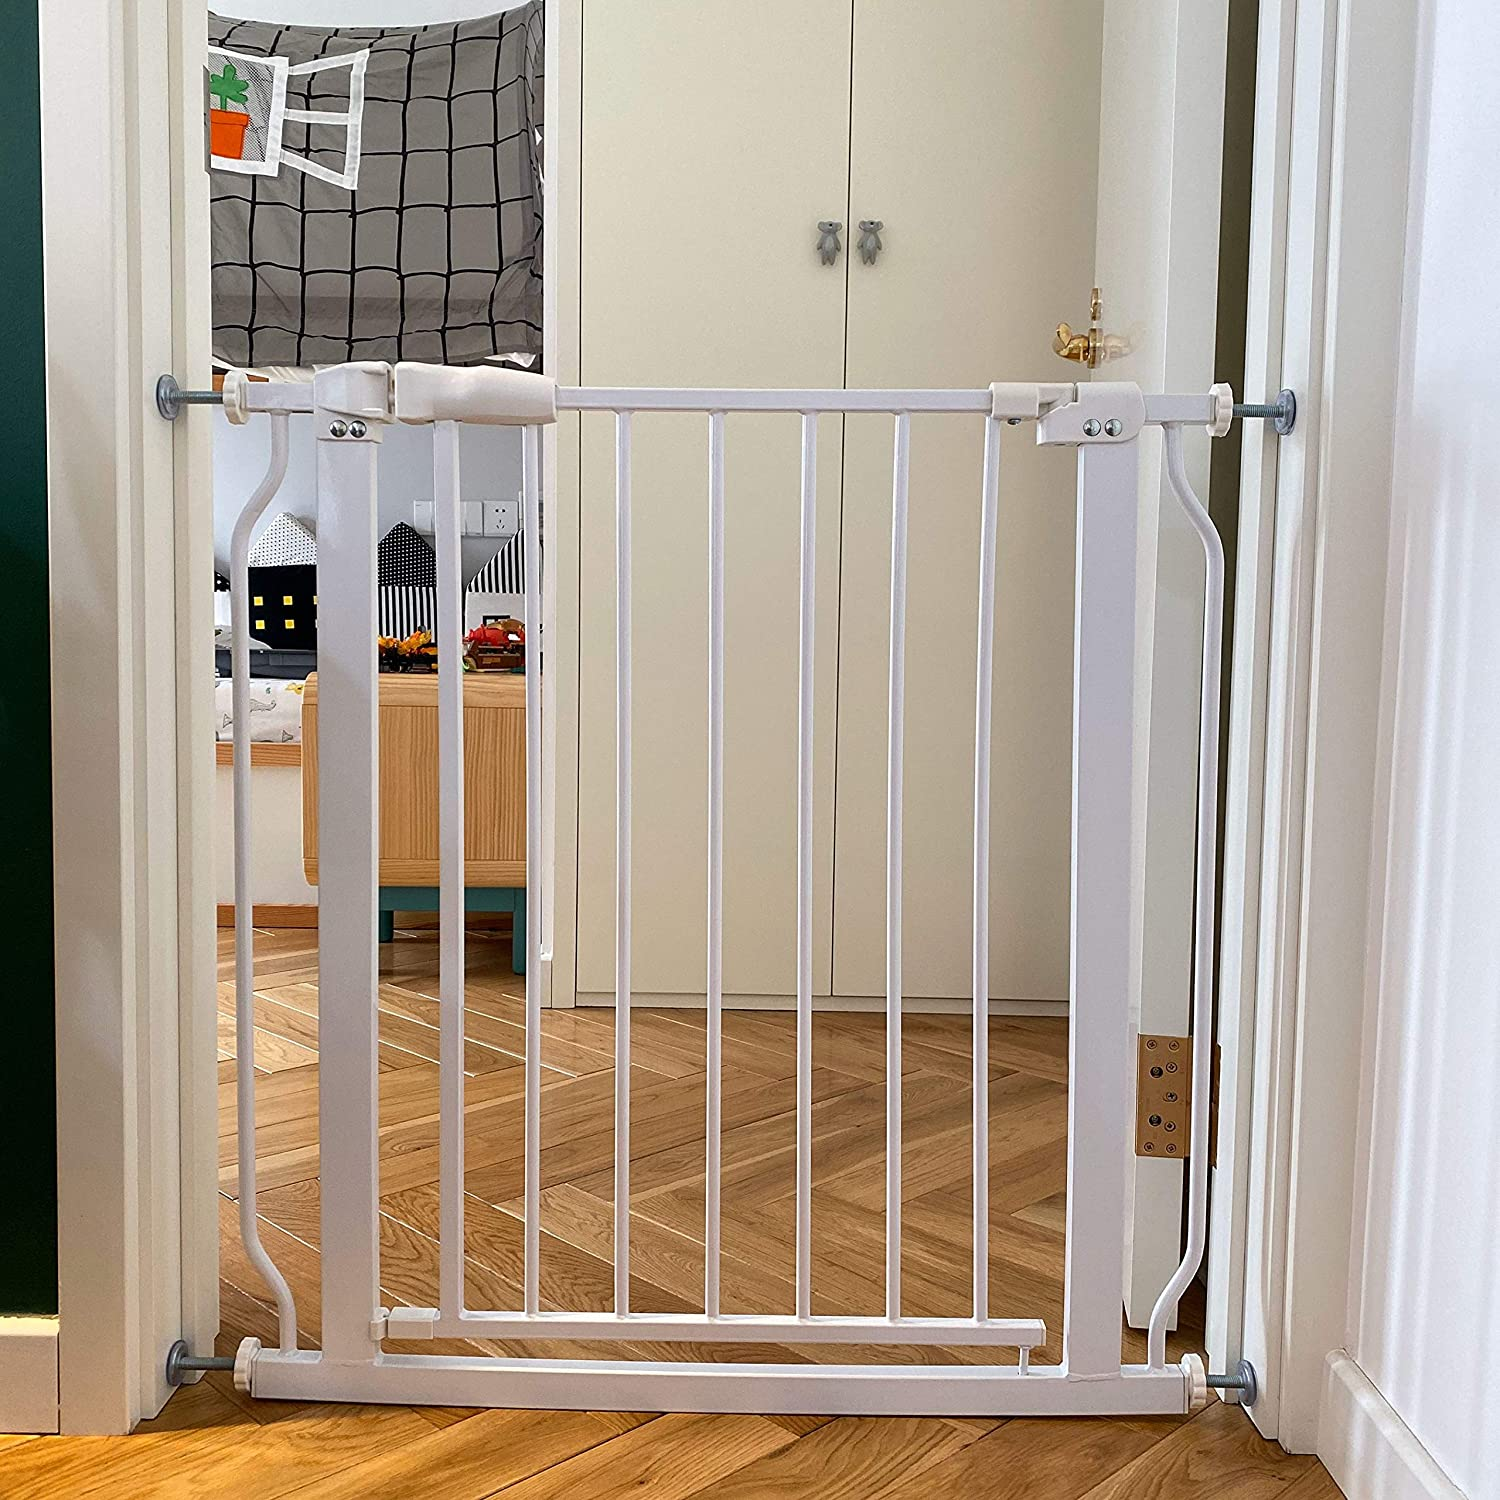 BalanceFrom Easy Walk-Thru Safety Gate for Doorways and Stairways with Auto-Close/Hold-Open Features